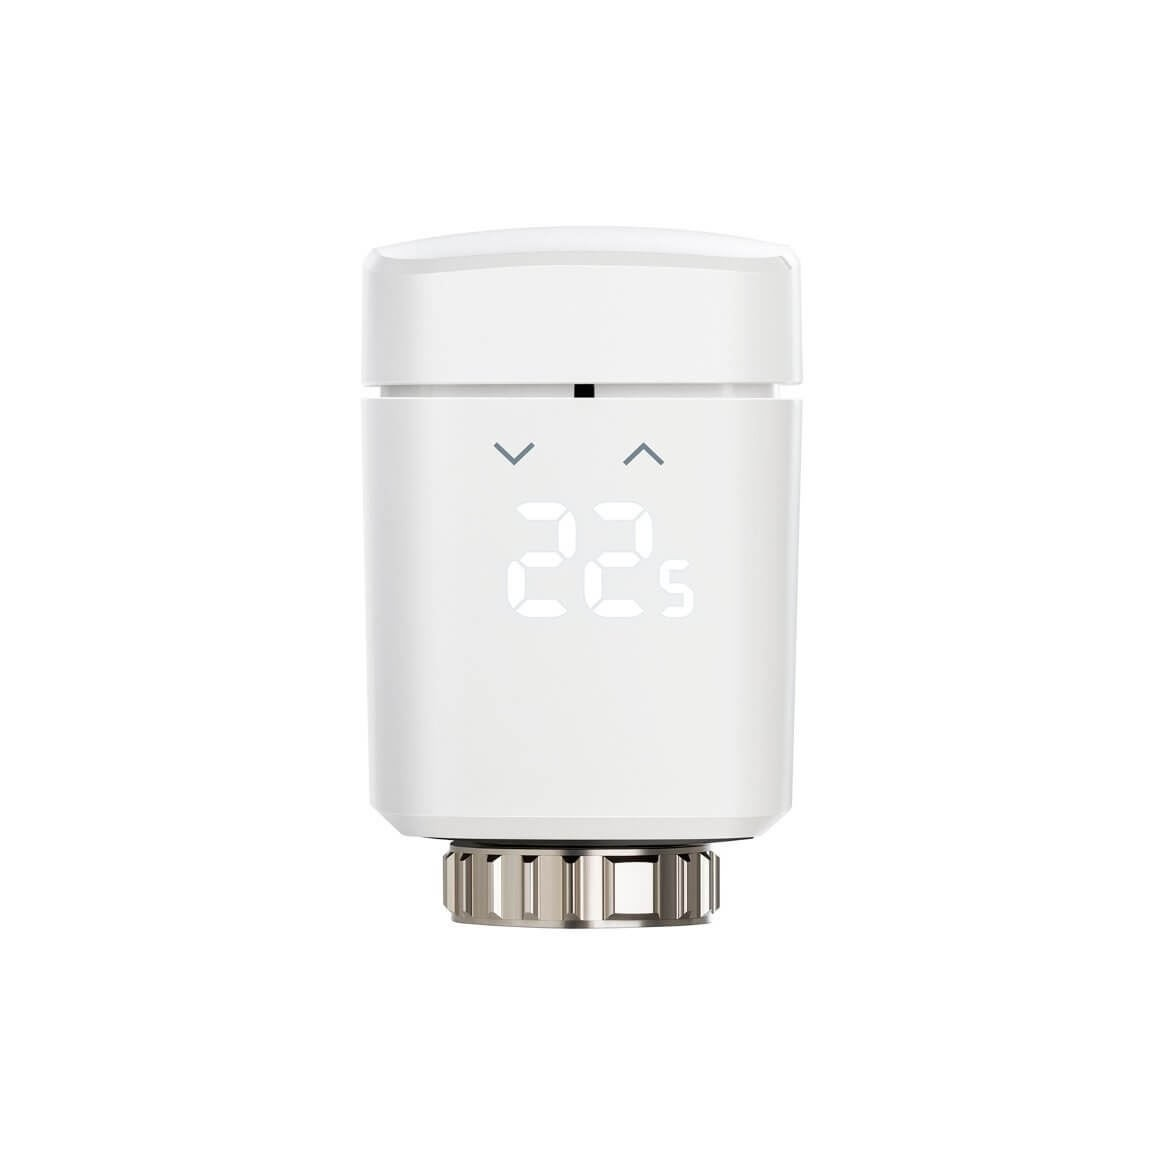 Eve Thermo - Heizkörperthermostat mit Display & Touchbedienfeld